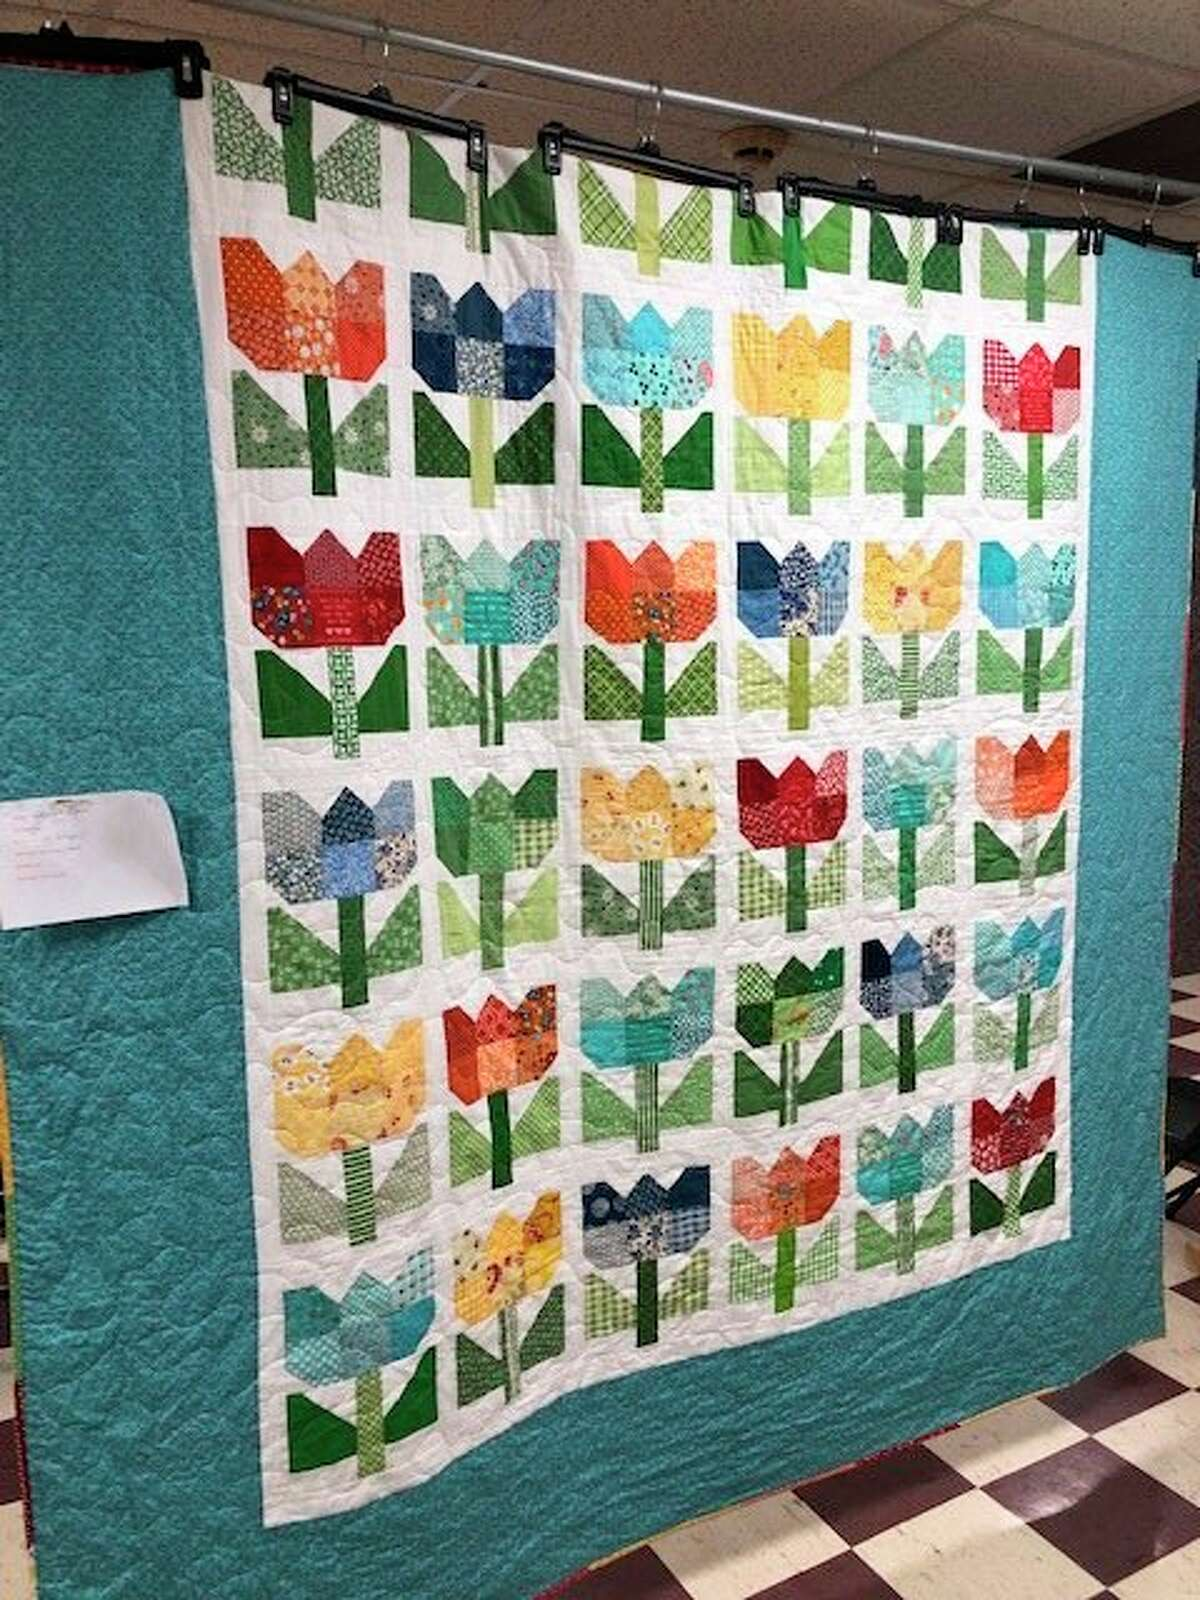 The Fall into Quilting Craft and Quilt Show was held over the weekend at Norman Township Hall.